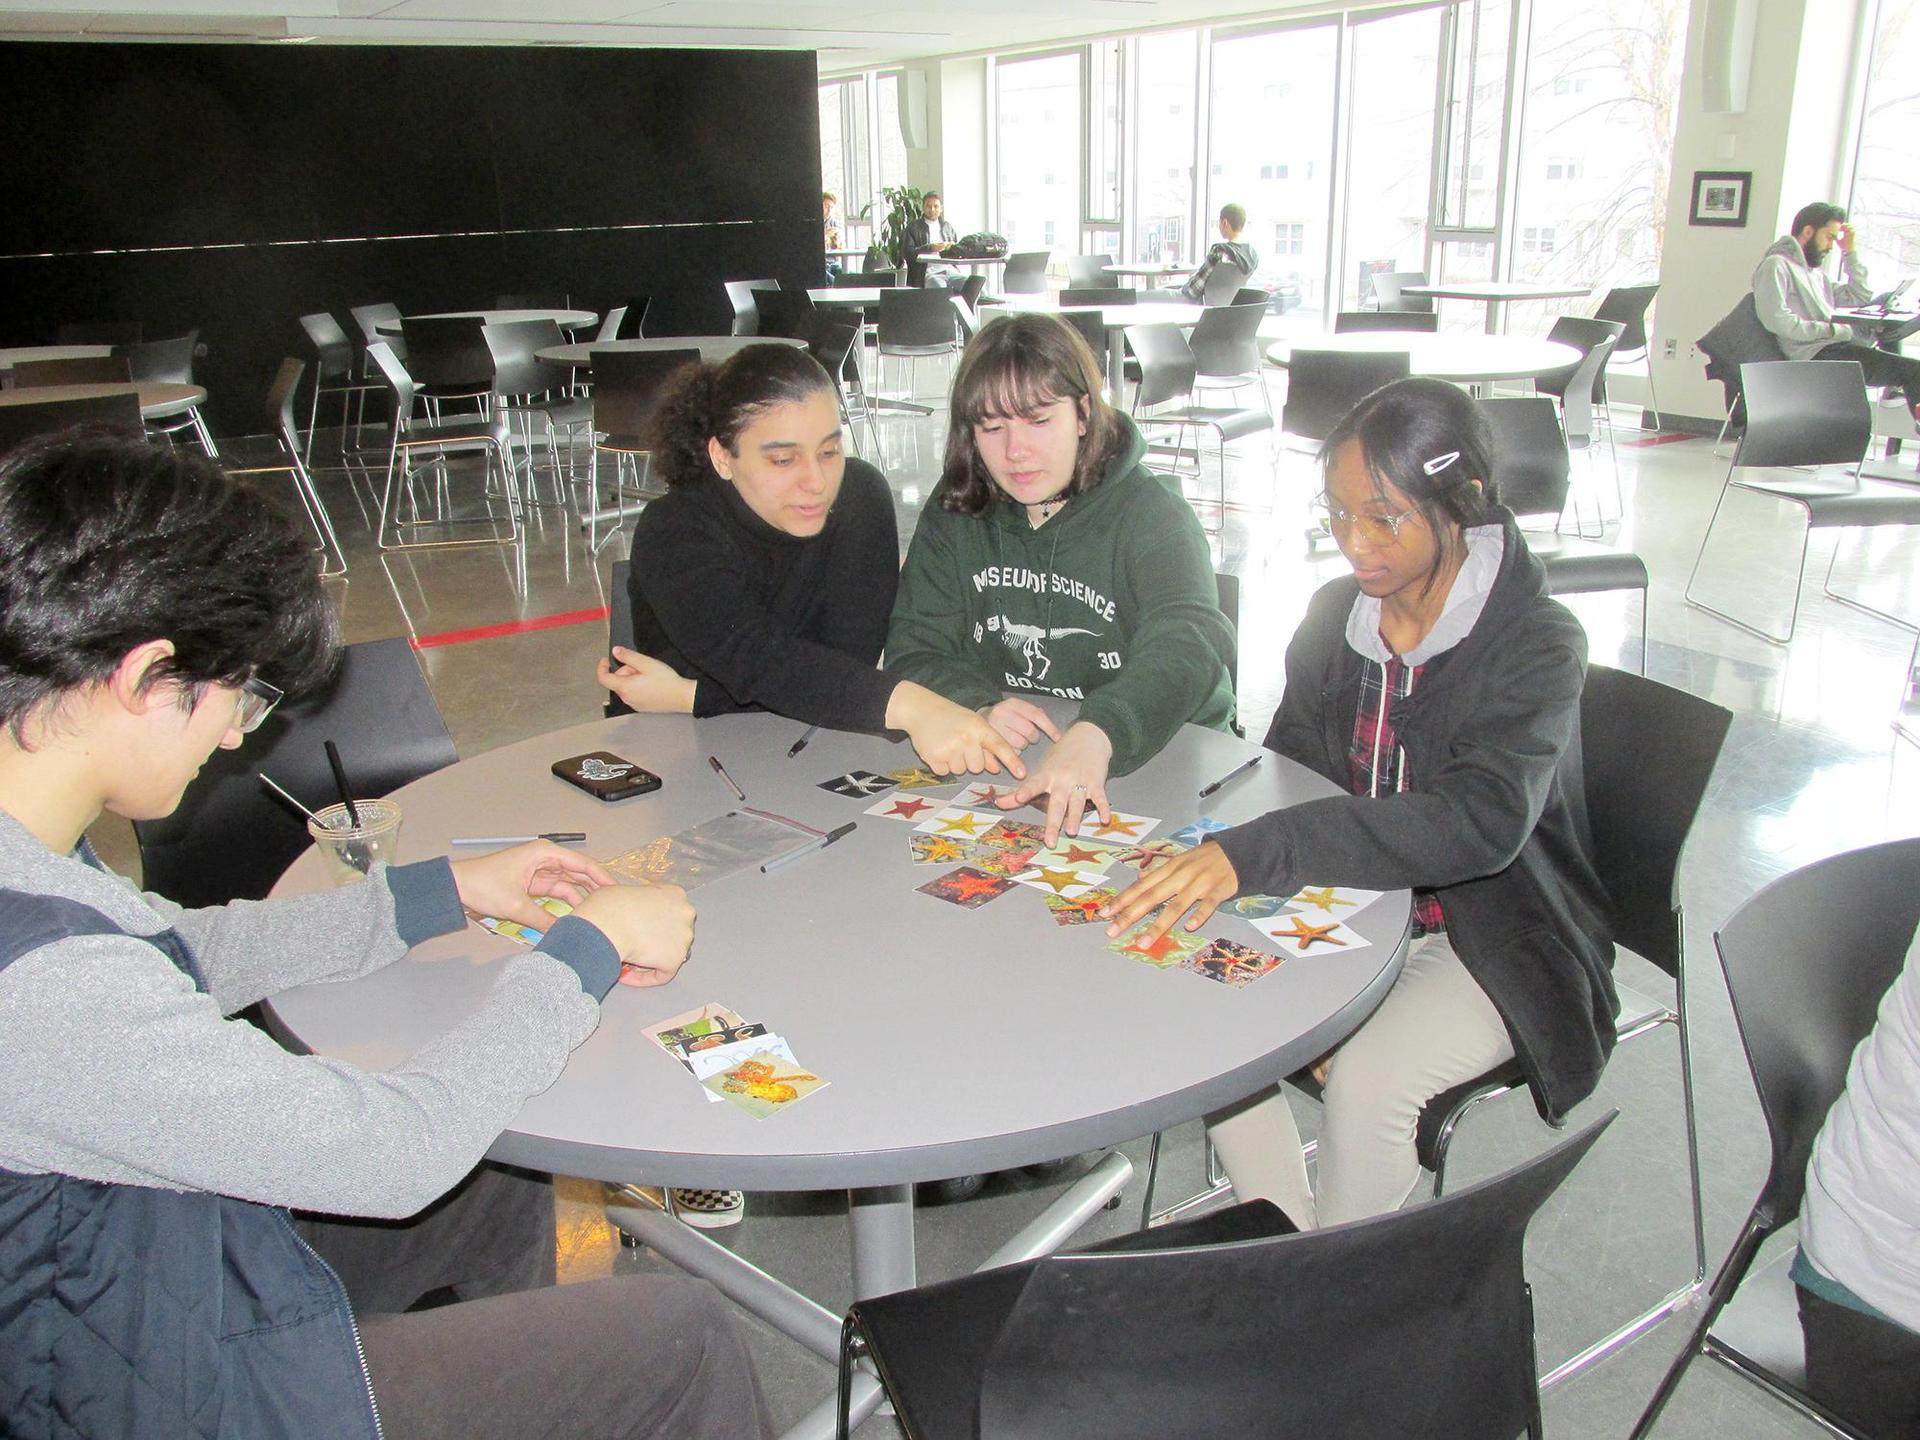 Students work on a project at a round table